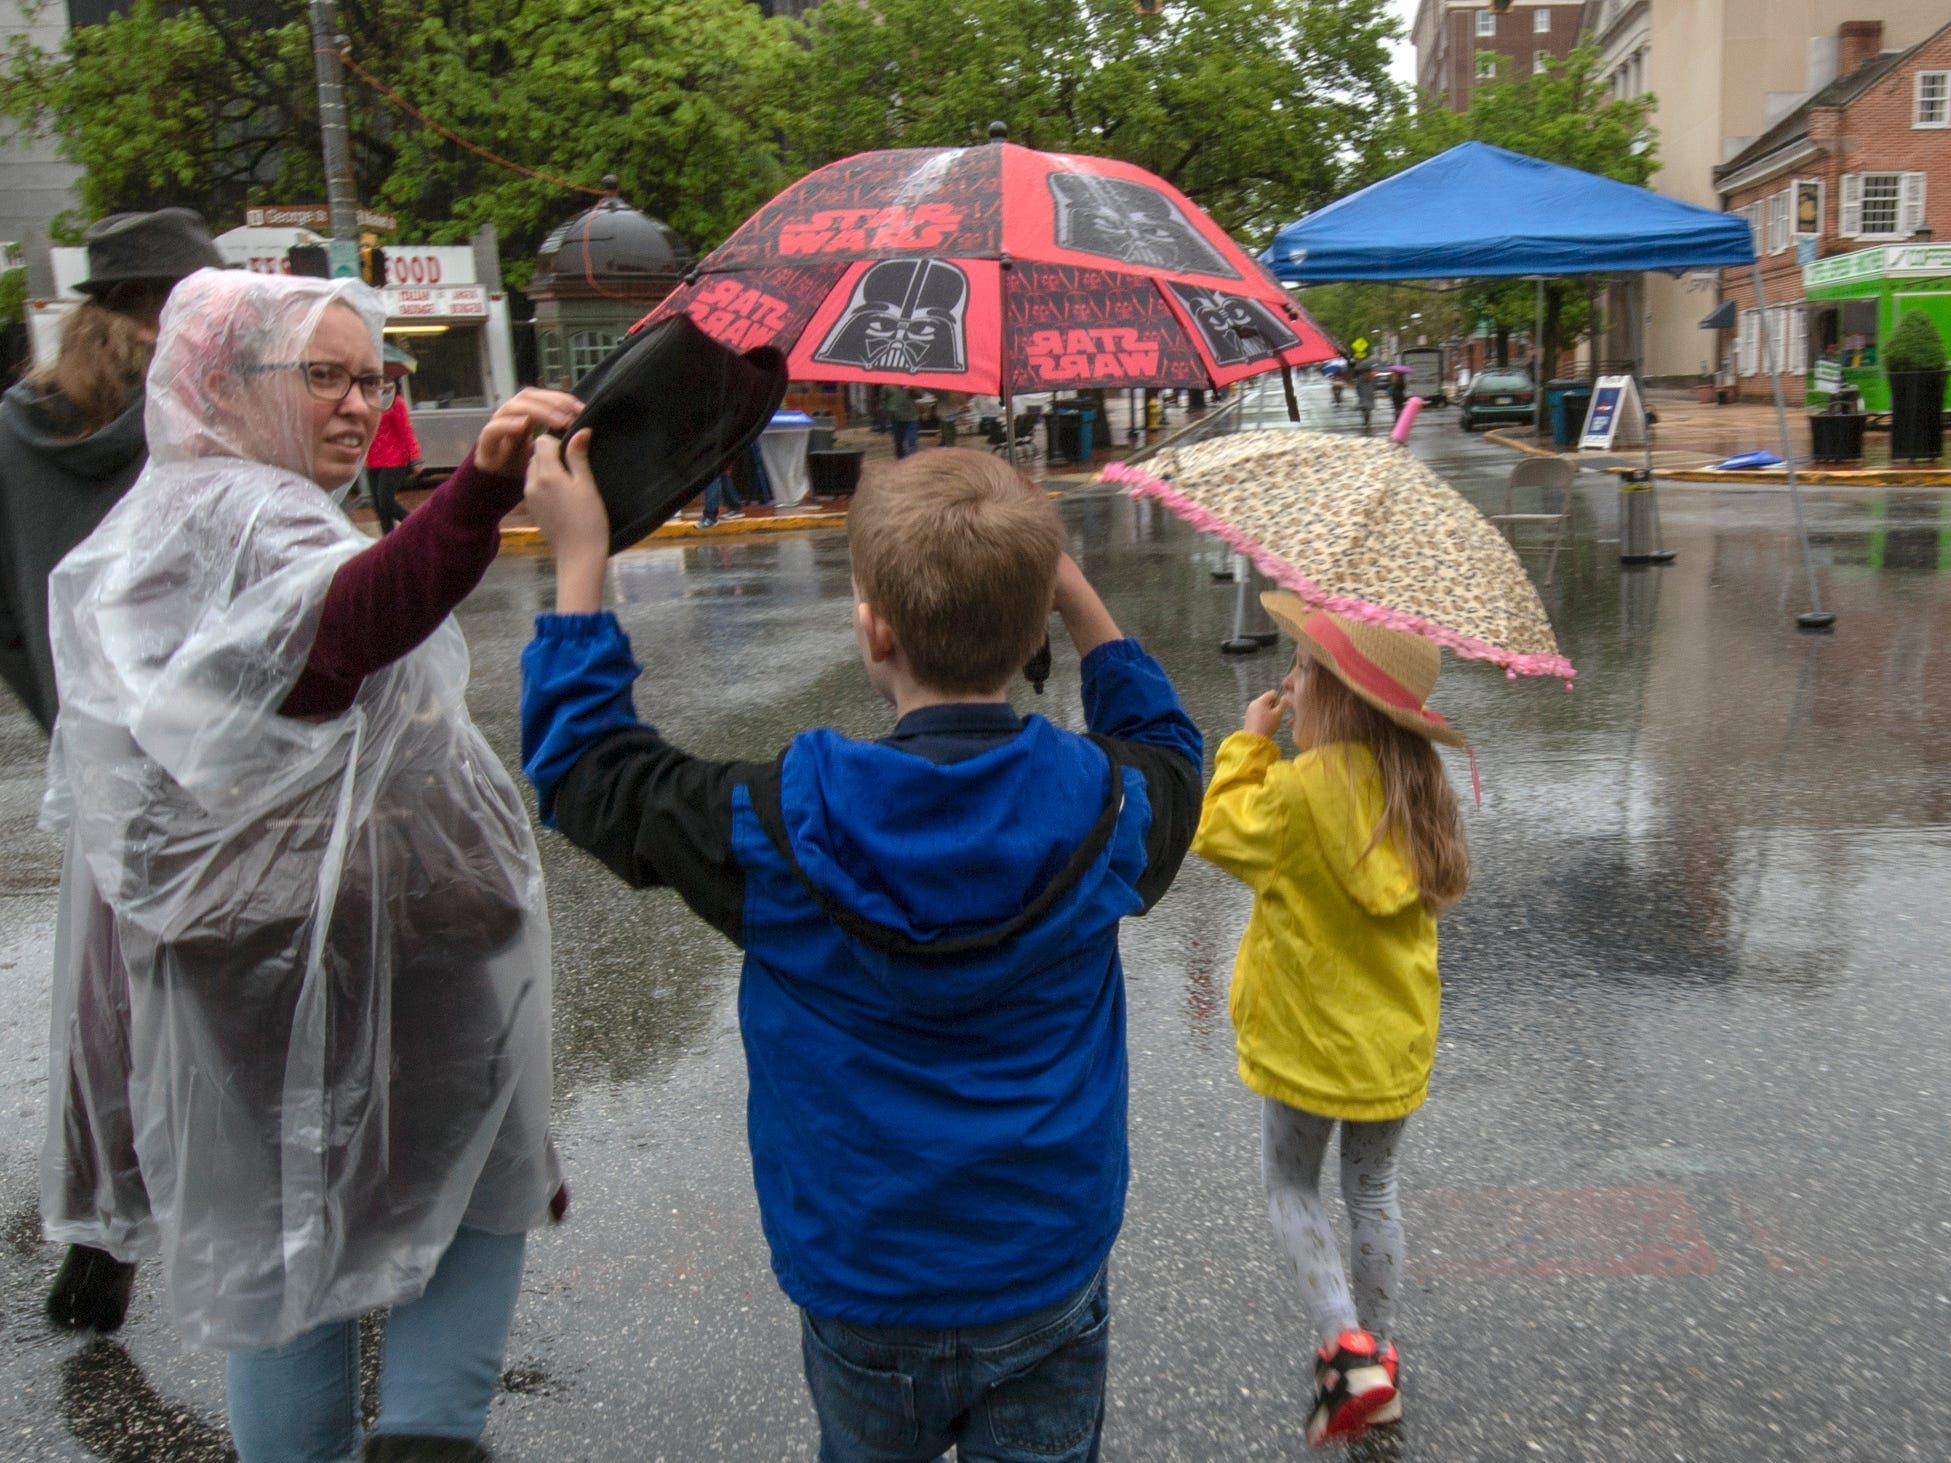 A family adjusts hats and umbrellas during the 44th Annual Olde York Street Fair.